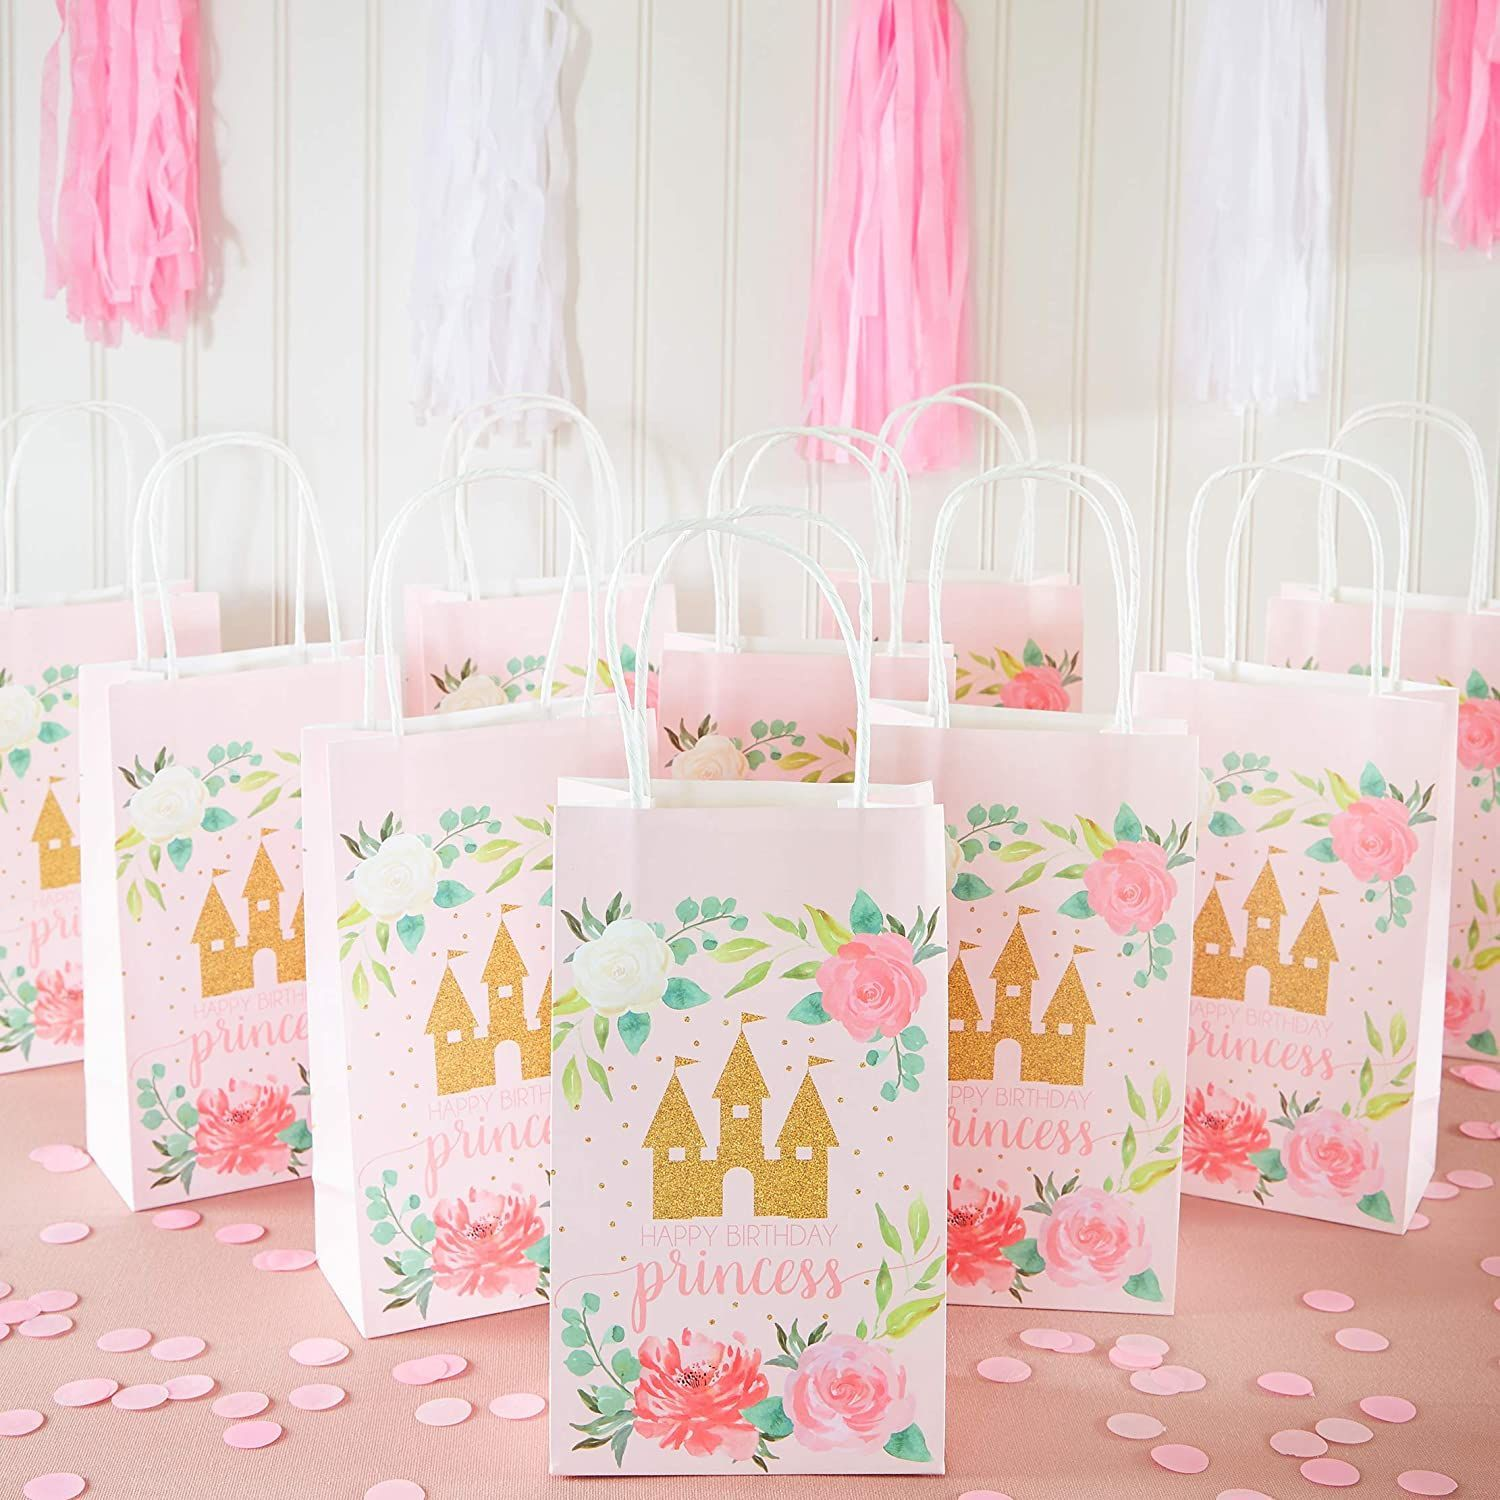 Pink Princess Castle/Candy Goodie Favor Bags with Handle for Princess Theme Birthday Baby Shower Party Favors Supplies 12 Pieces Princess Party Gift Treat Bag